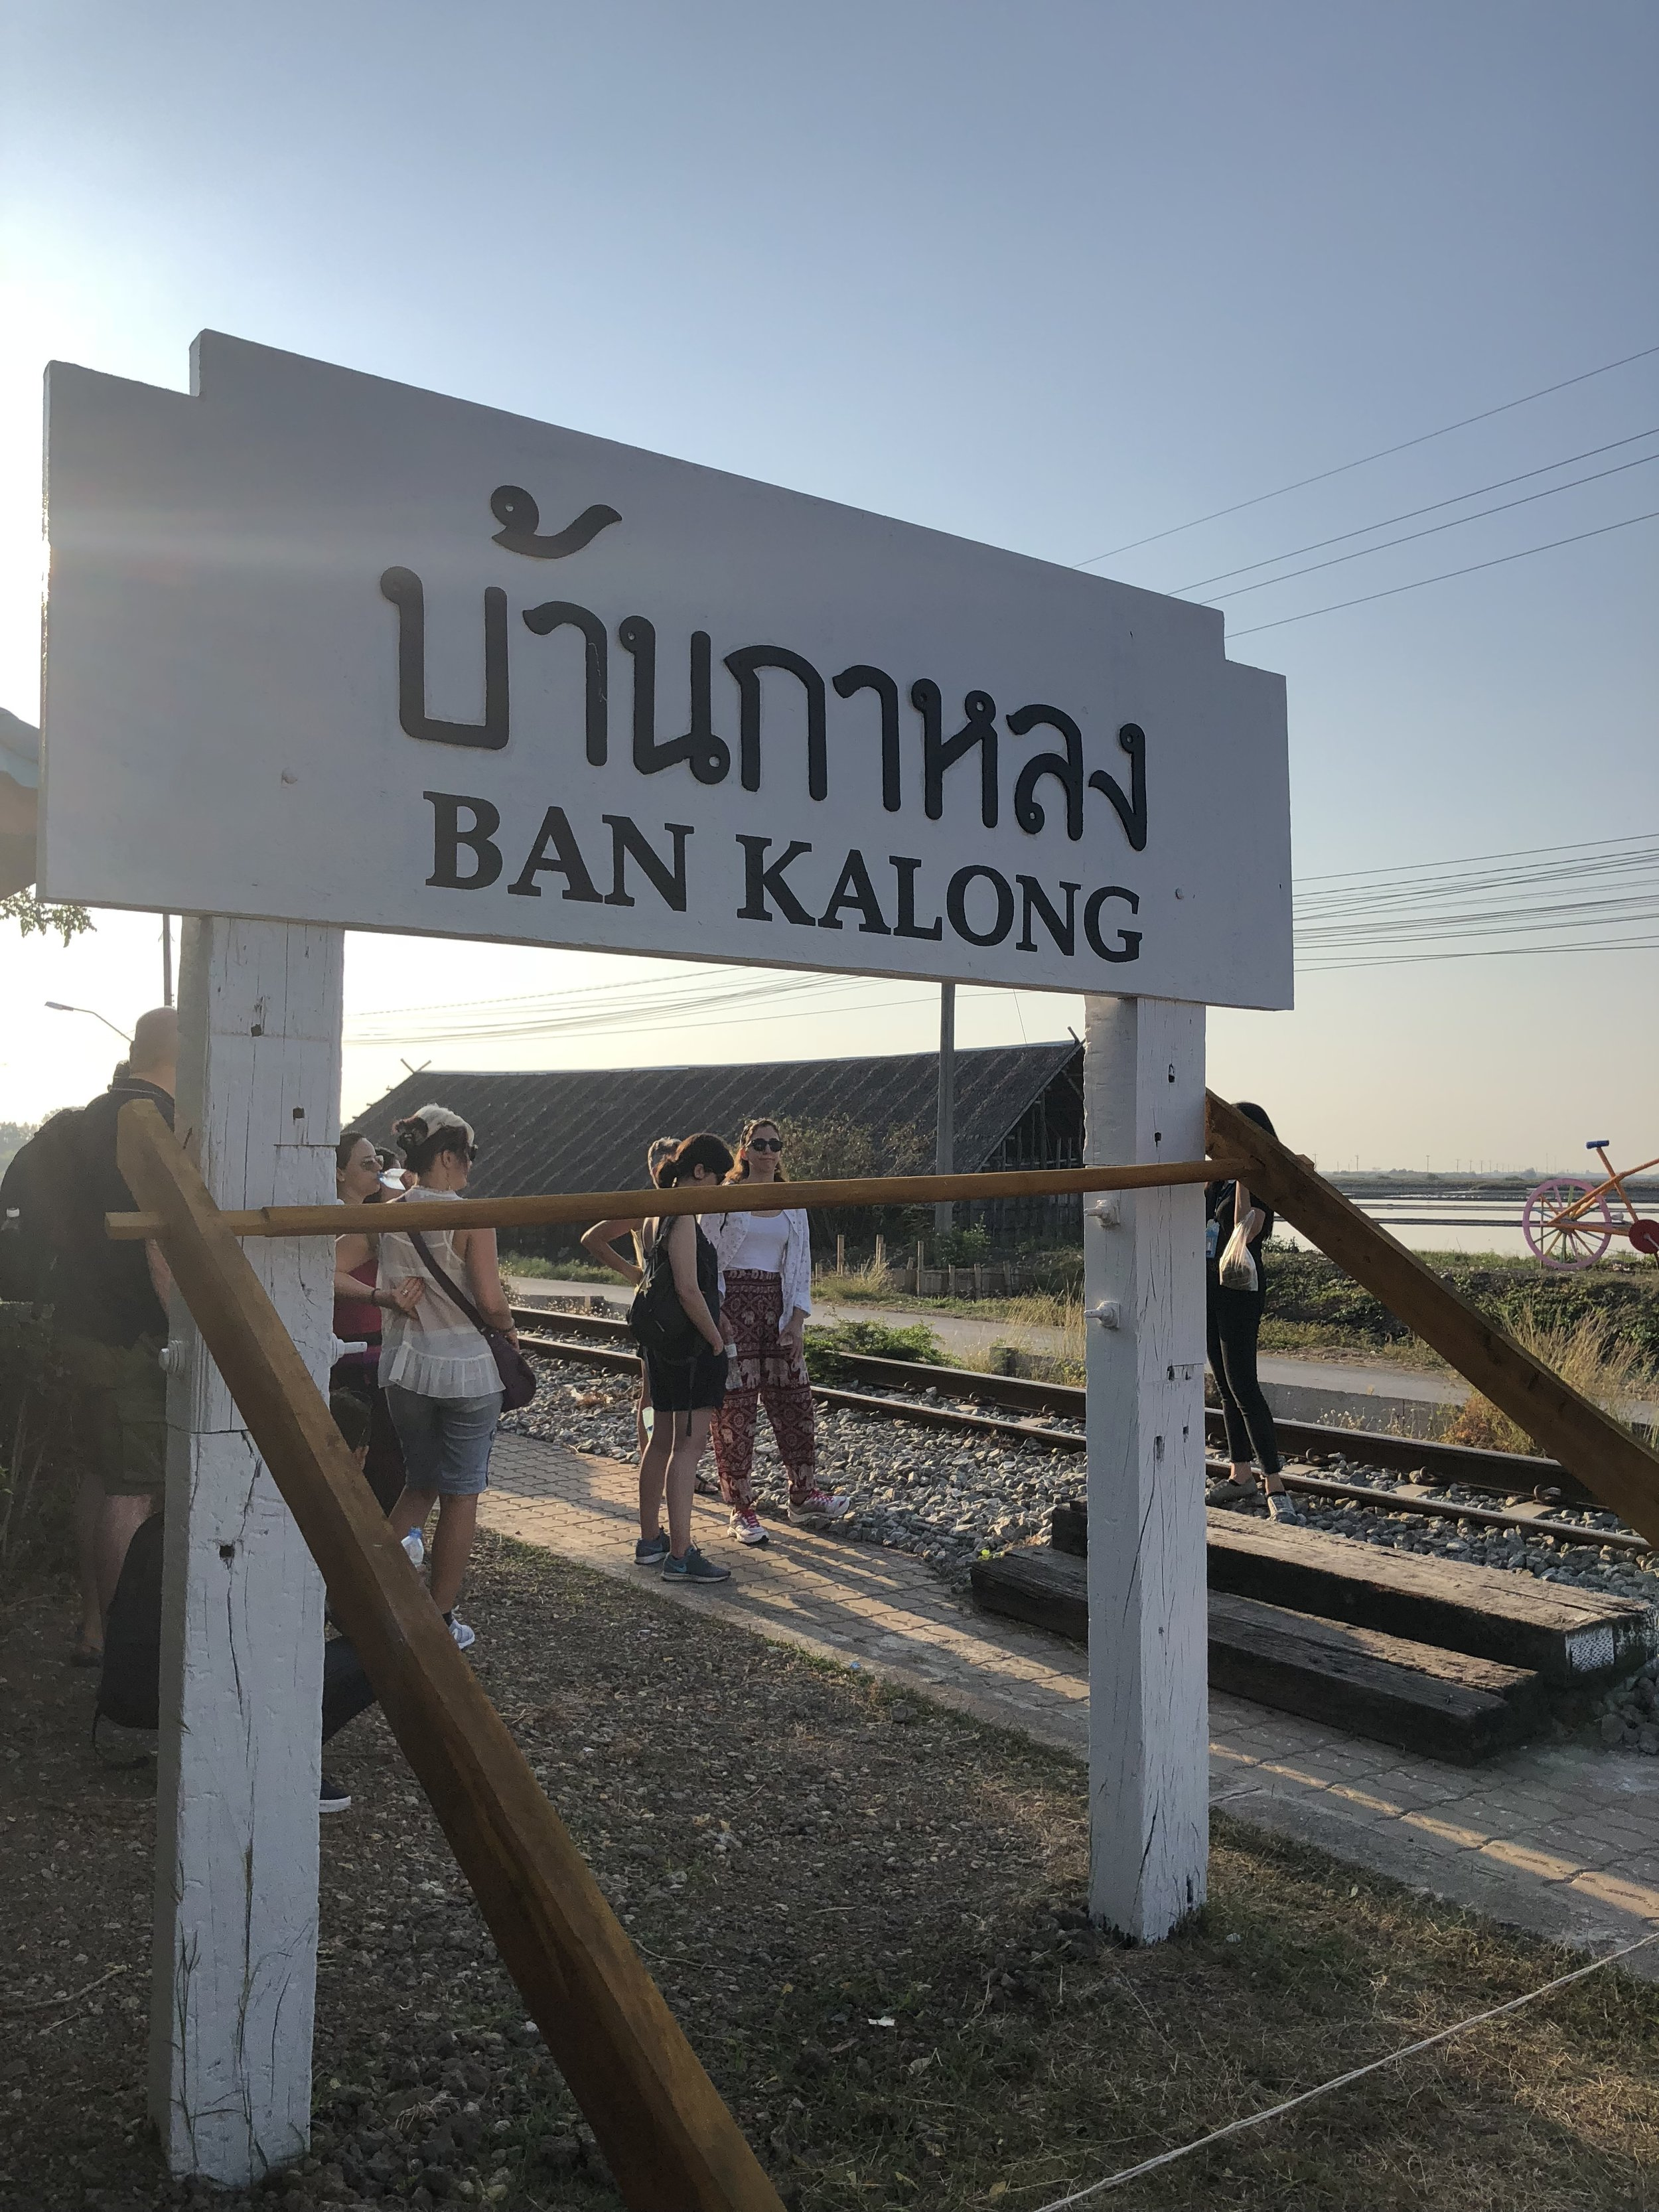 Waiting in this station for the train that will take us to Maeklong Station. We got to see some salt farms right next to the station.